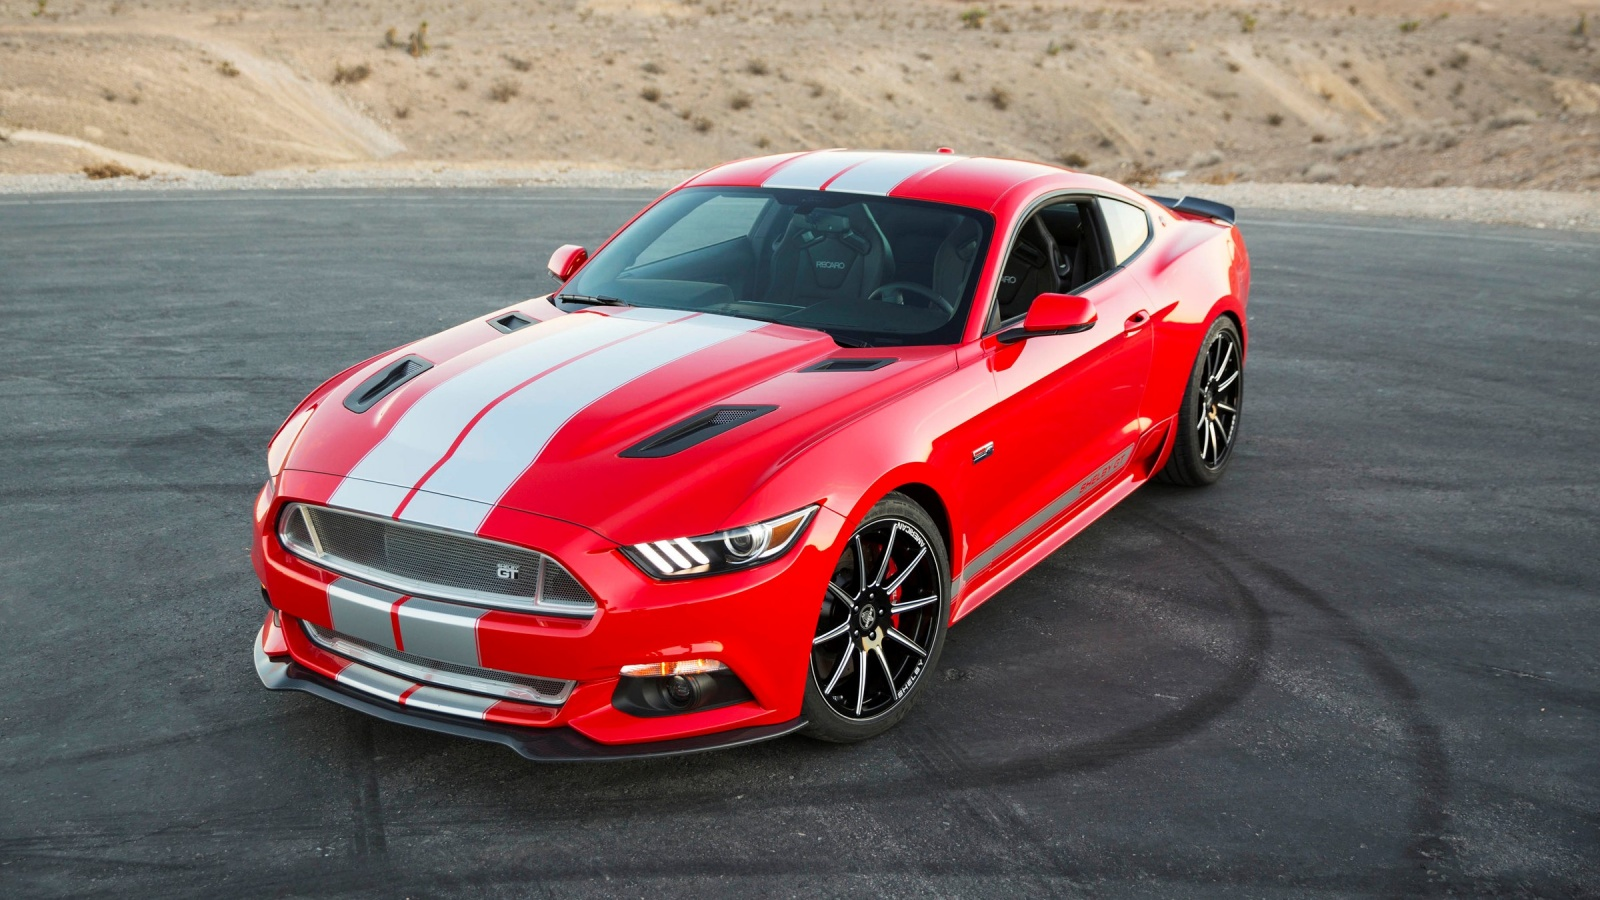 2015 Gt Mustang >> Ford Mustang Shelby GT 2015 Wallpapers - 1600x900 - 488969